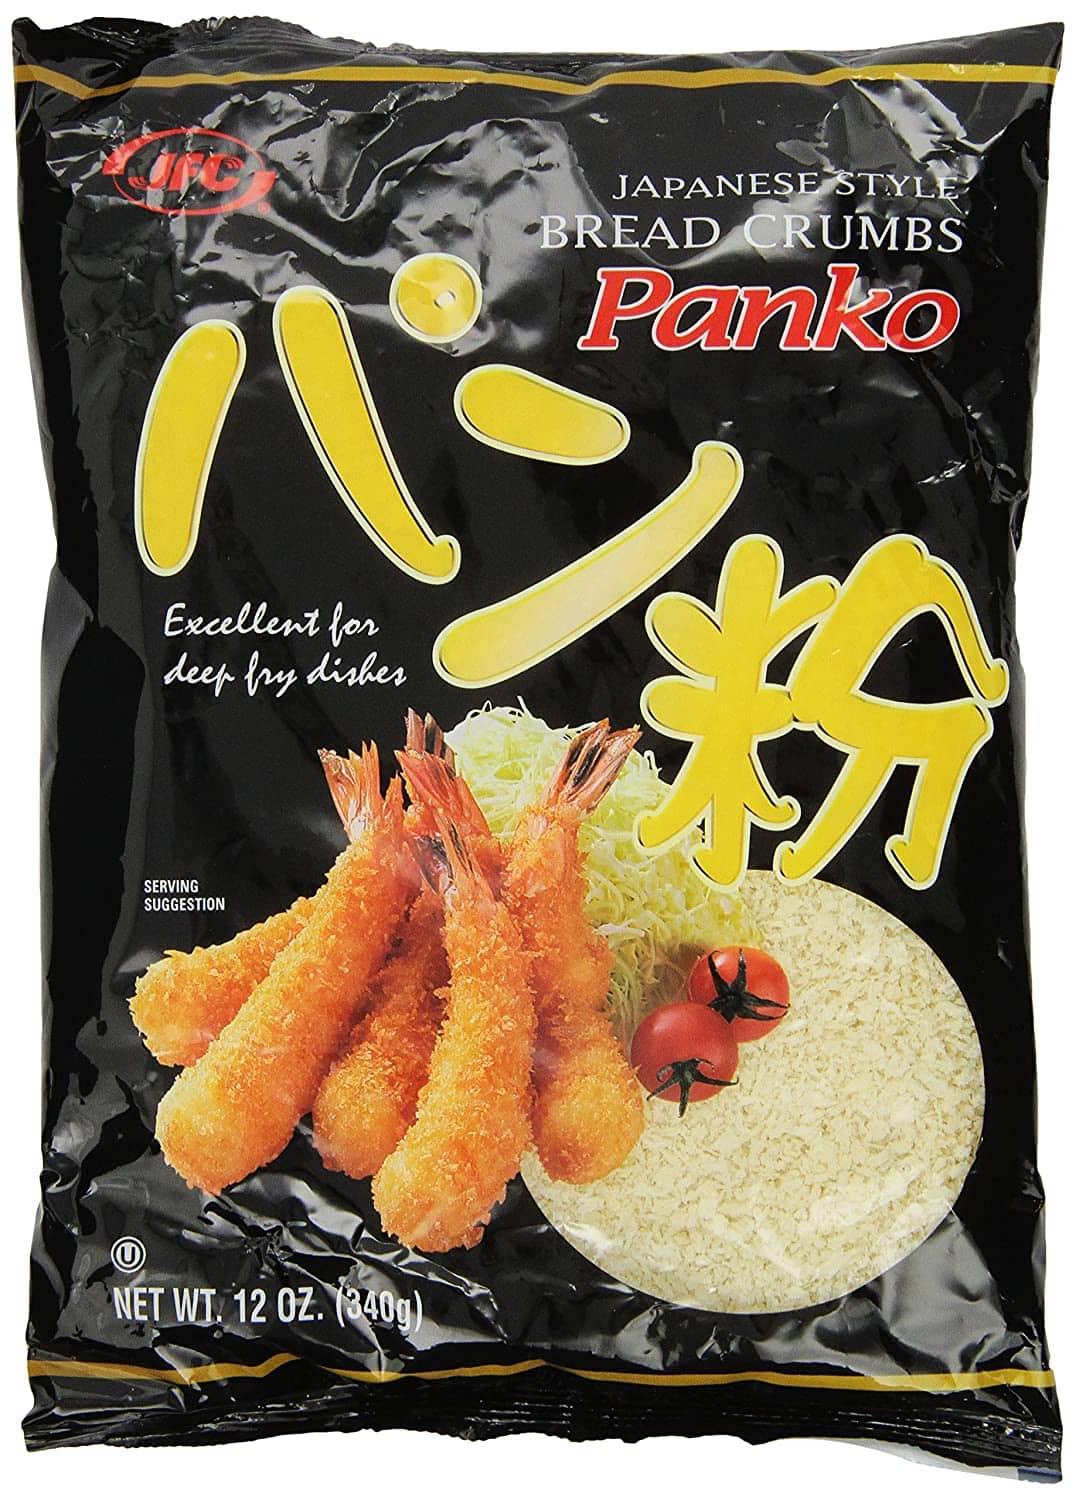 JFC Panko Bread Crumbs, 12-Ounce Packages (Pack of 6) for $11.94 @ Amazon